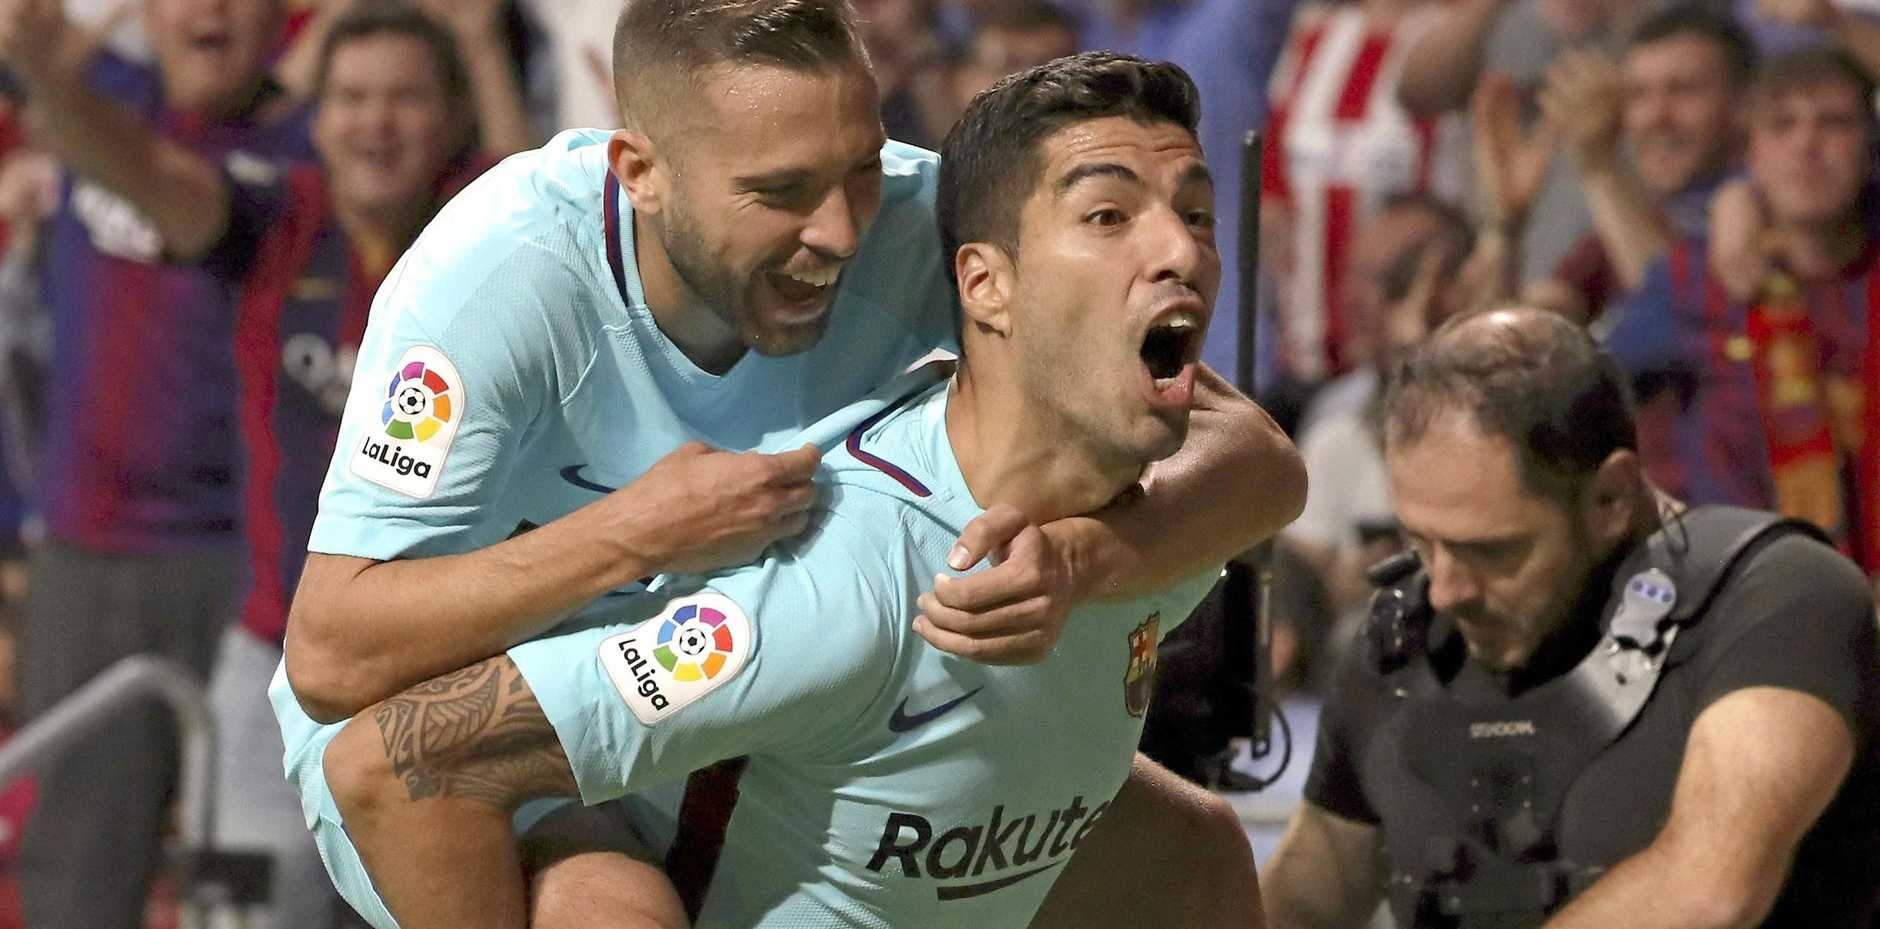 Barcelona's Luis Suarez (righgt) celebrates with his teammate Jordi Alba after scoring the equalising goal in the 1-1 draw with Atletico Madrid